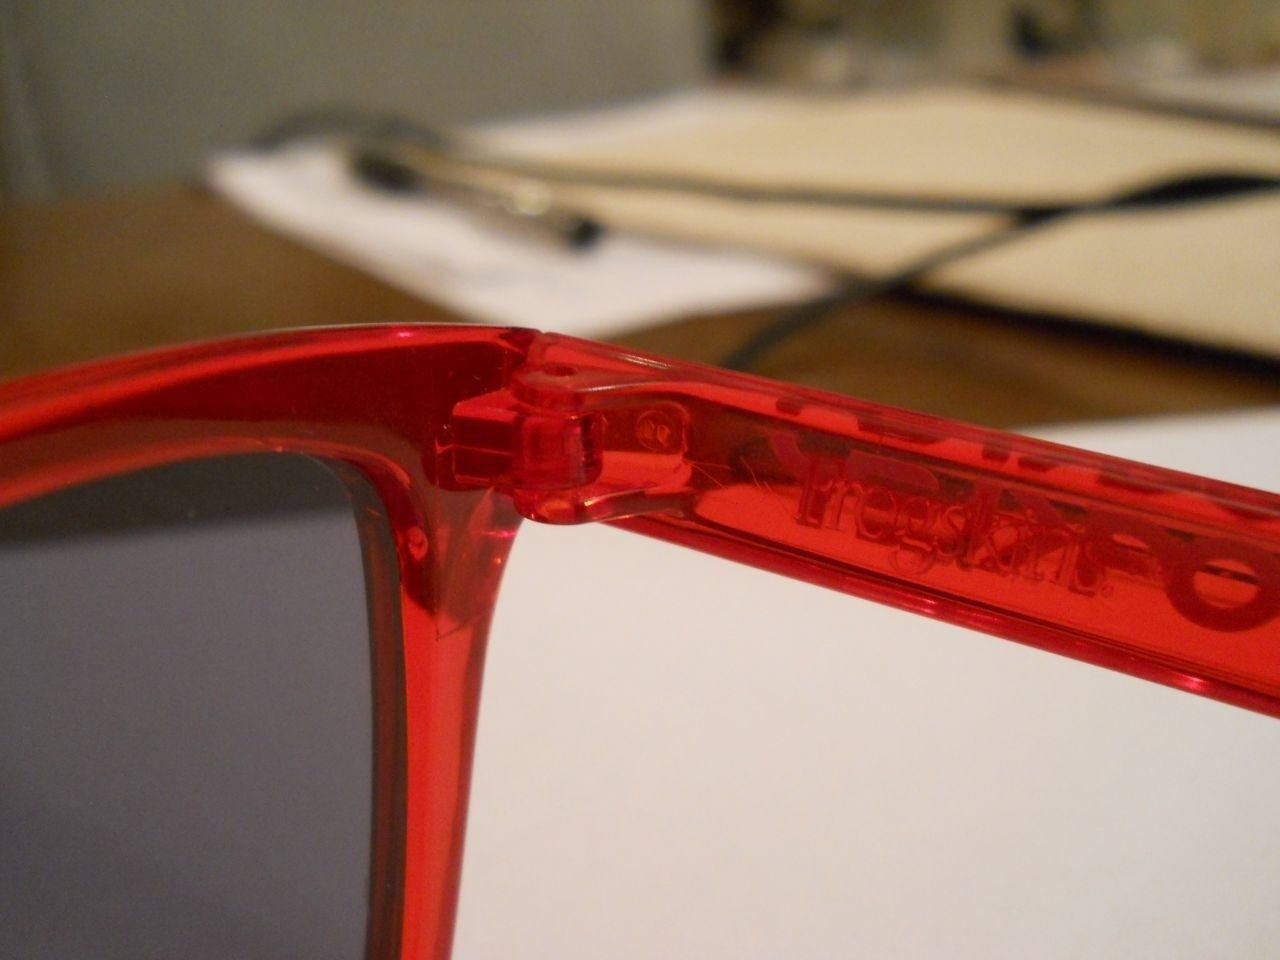 Crystal Red Frogskins - Real Or Fake? - 7qtf.jpg